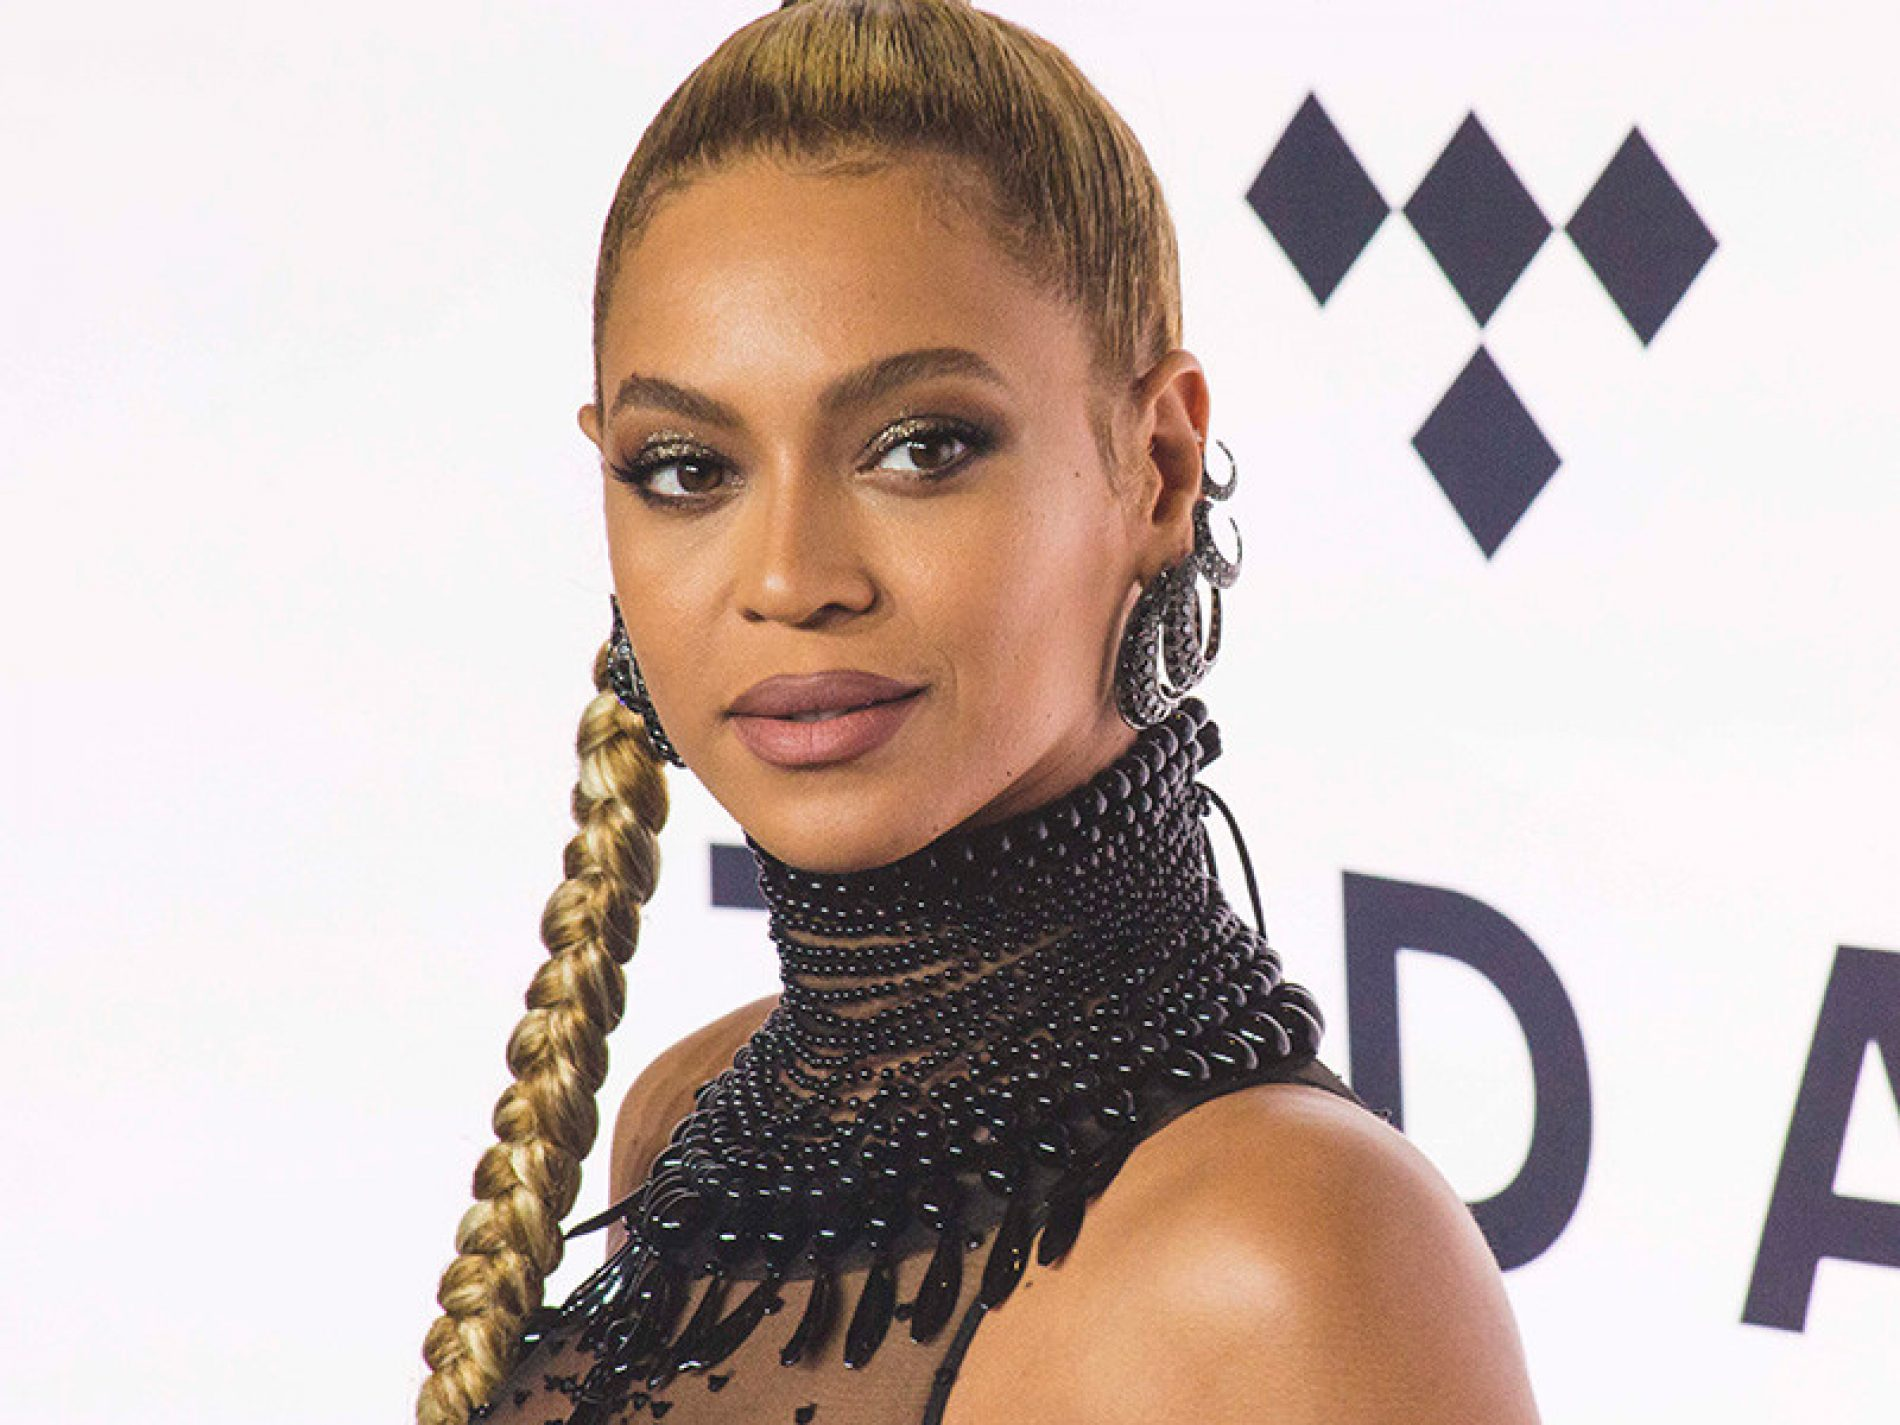 Some Scientist Had The Nerve To Rank Beyoncé As The Second Most Beautiful Woman On Earth